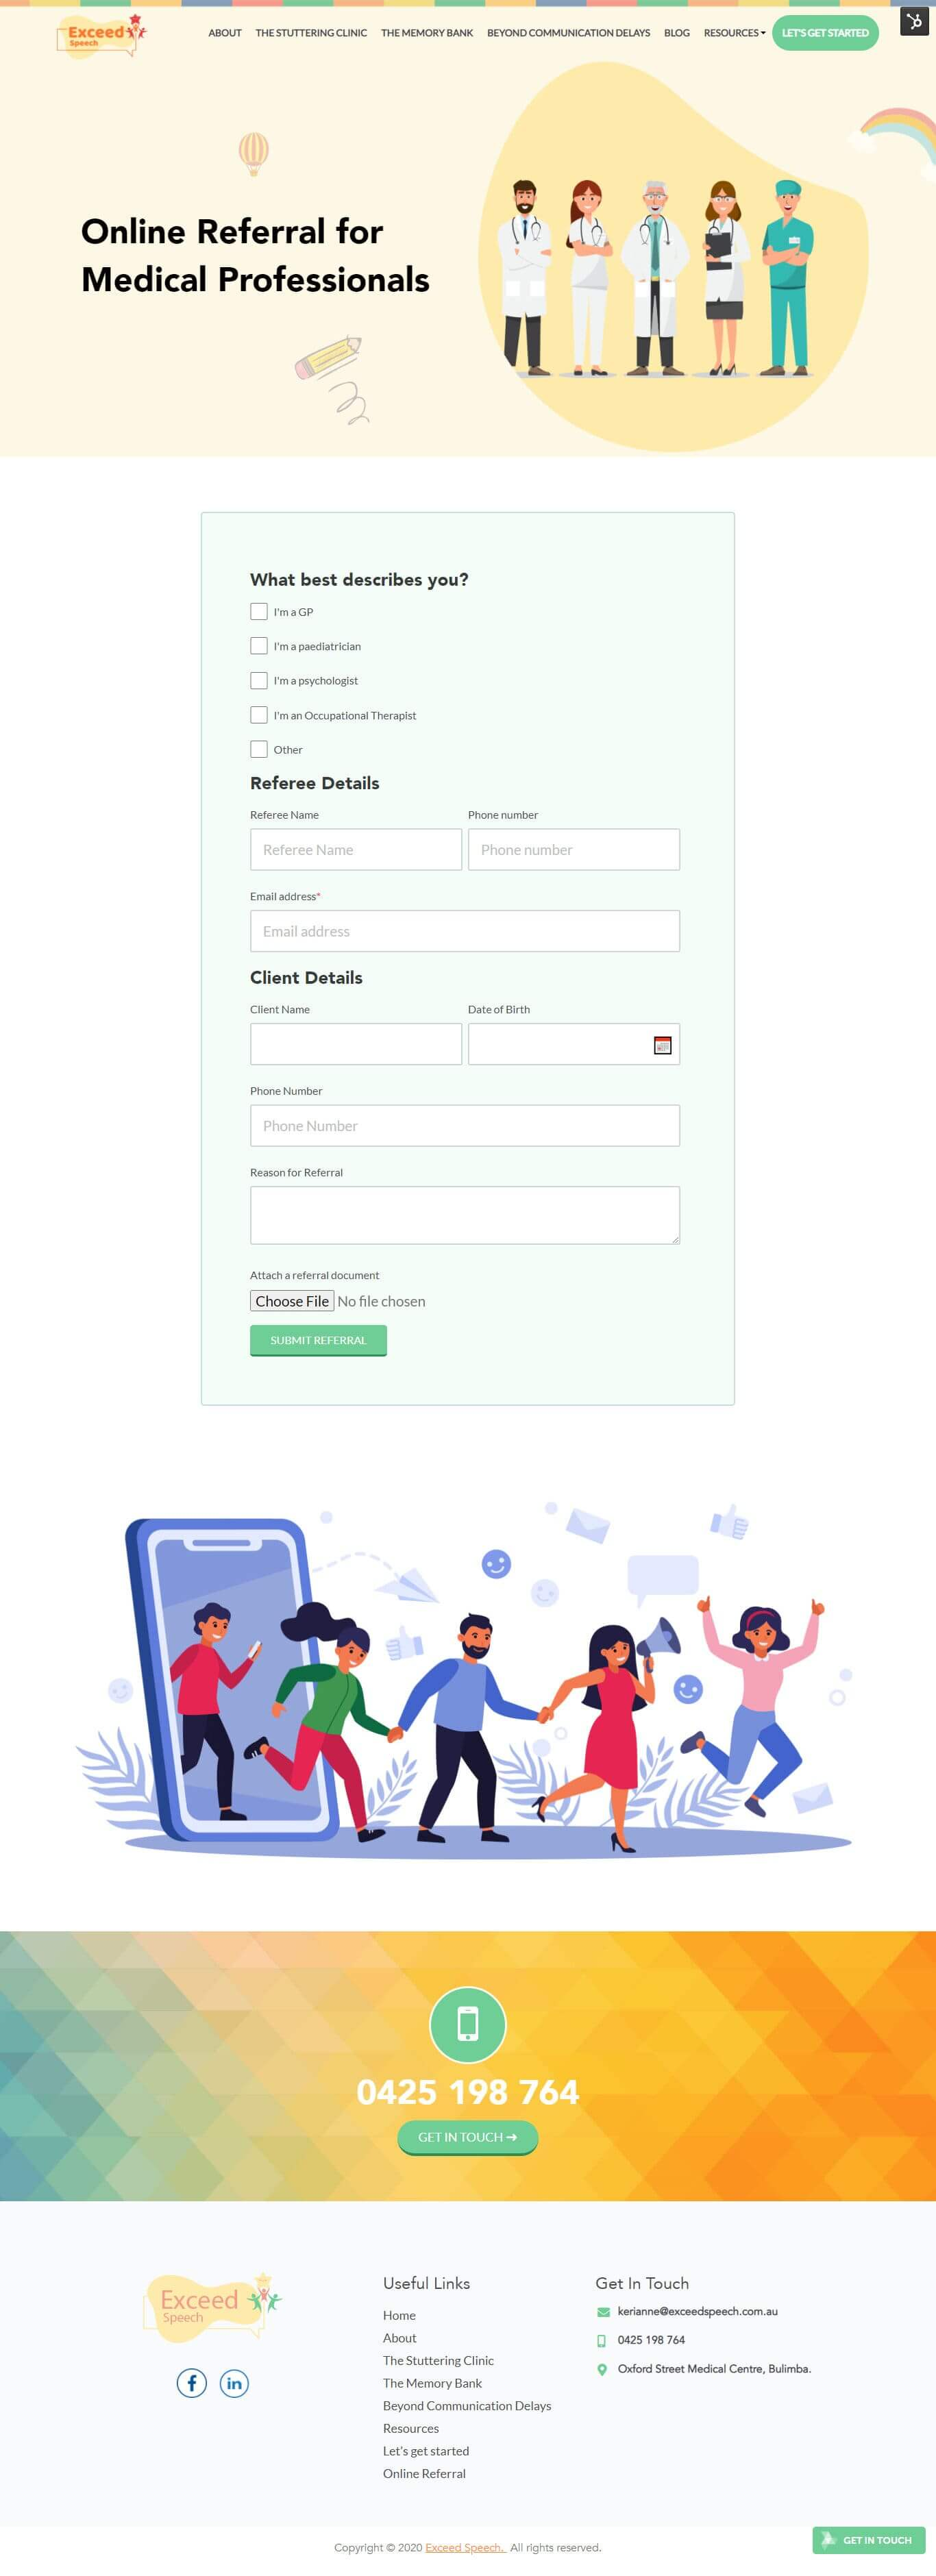 Online Referral Page-1